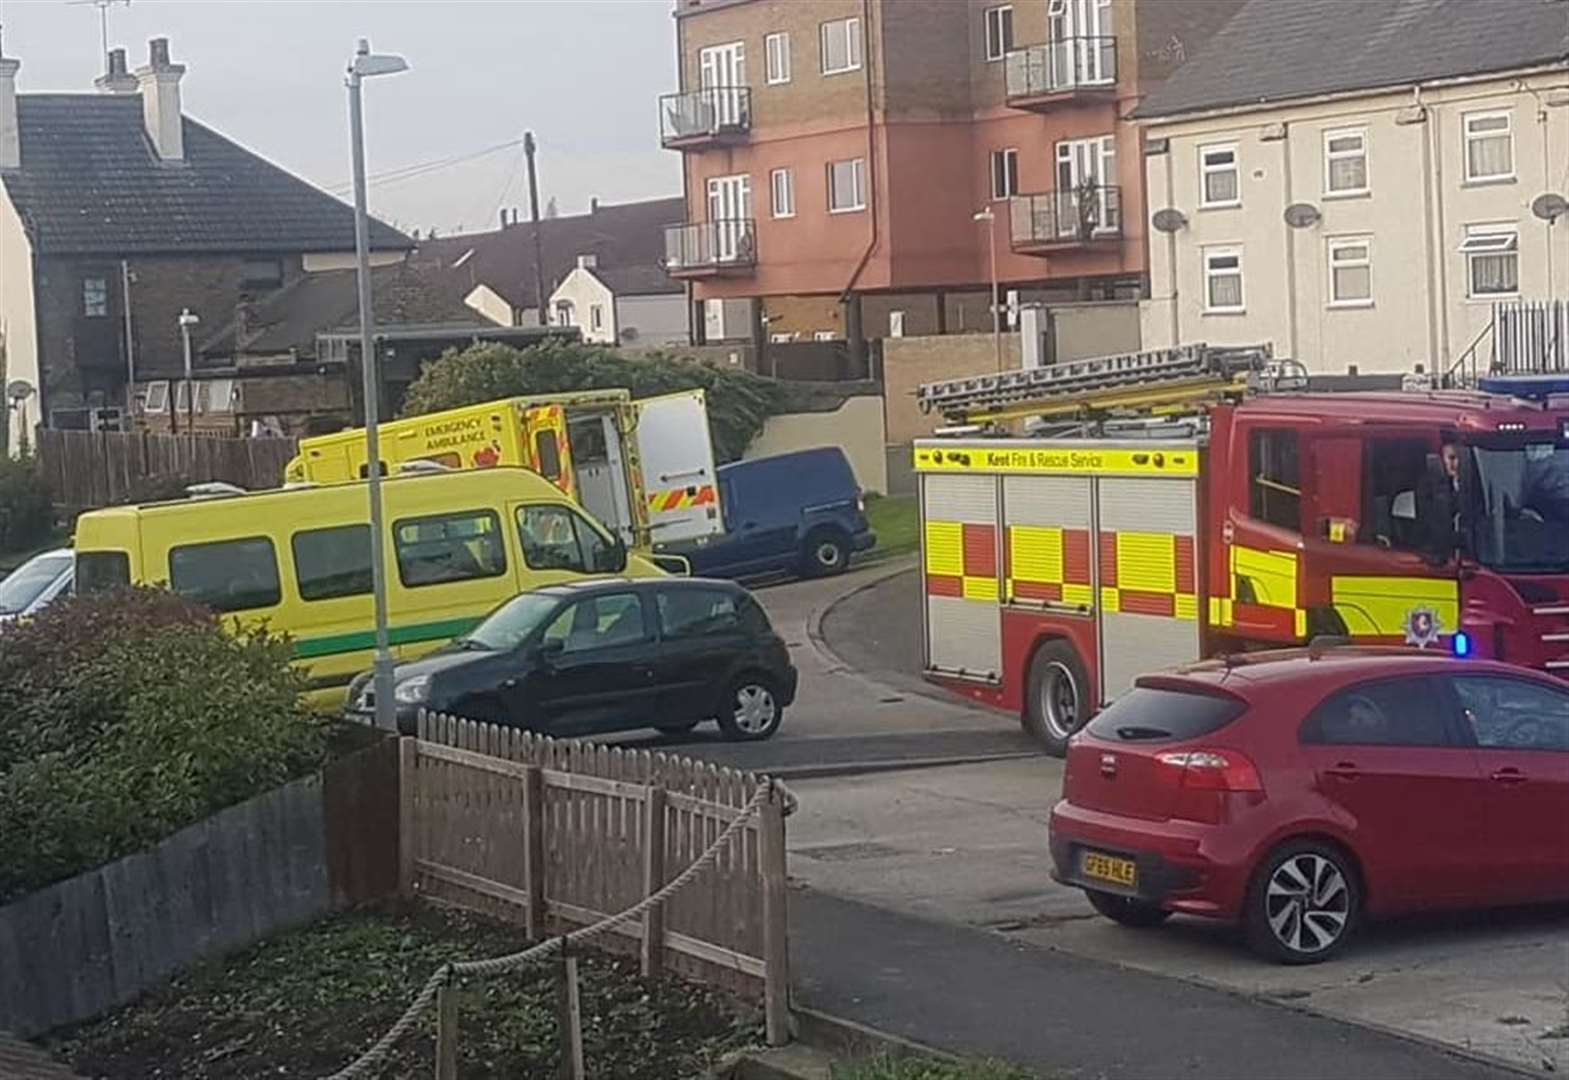 Air ambulance sent to incident near railway station